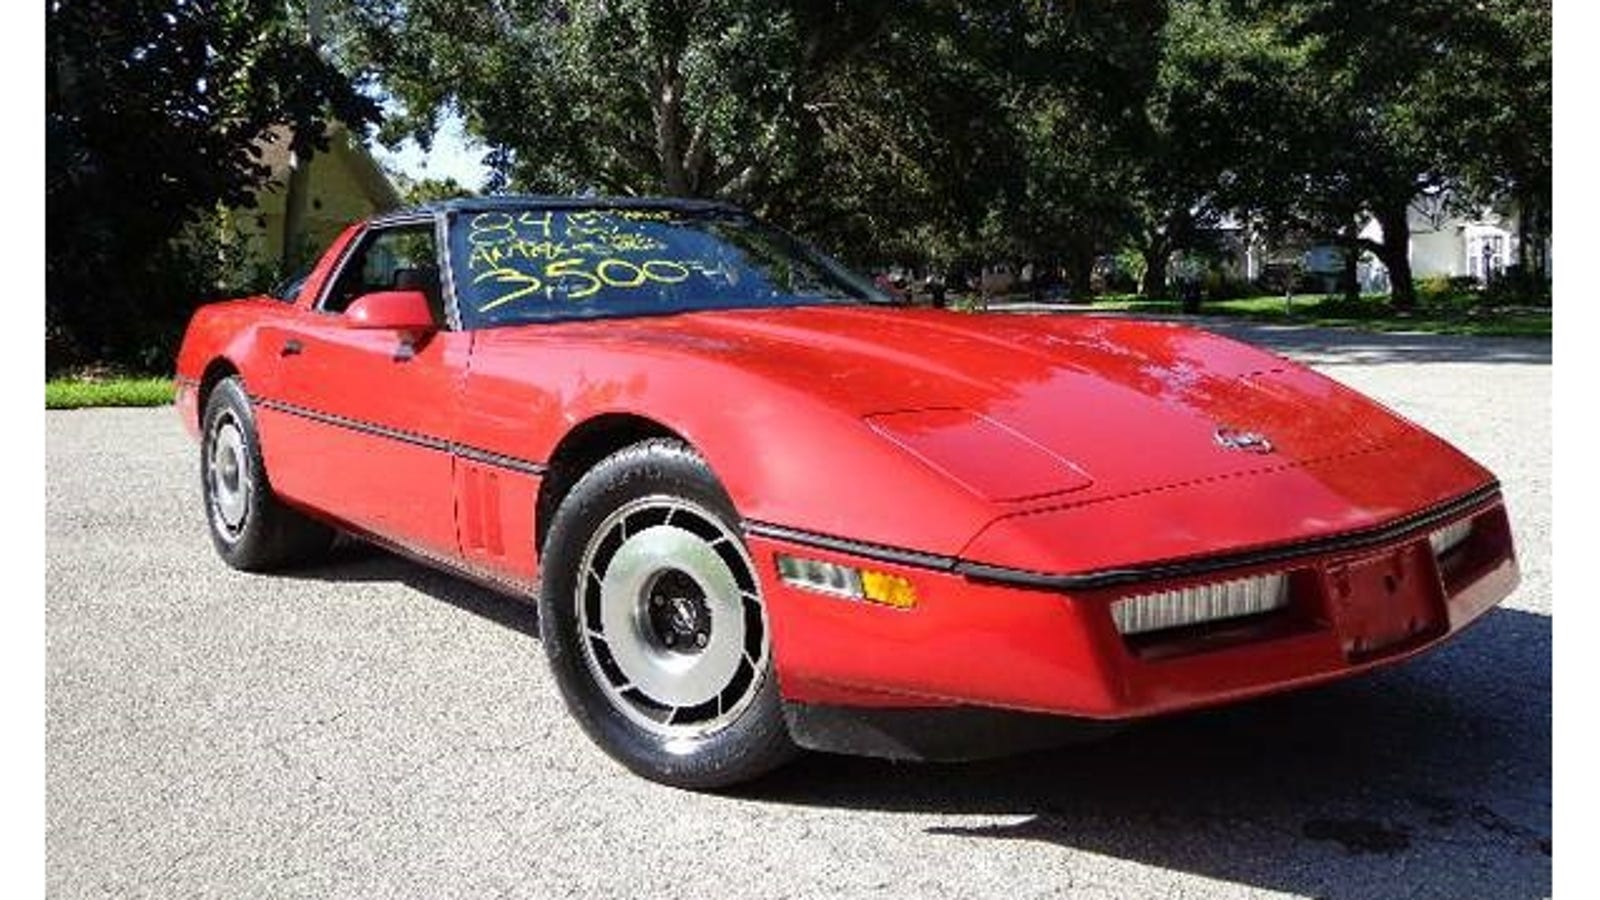 The Most Cougarific C4 Corvette On Craigslist